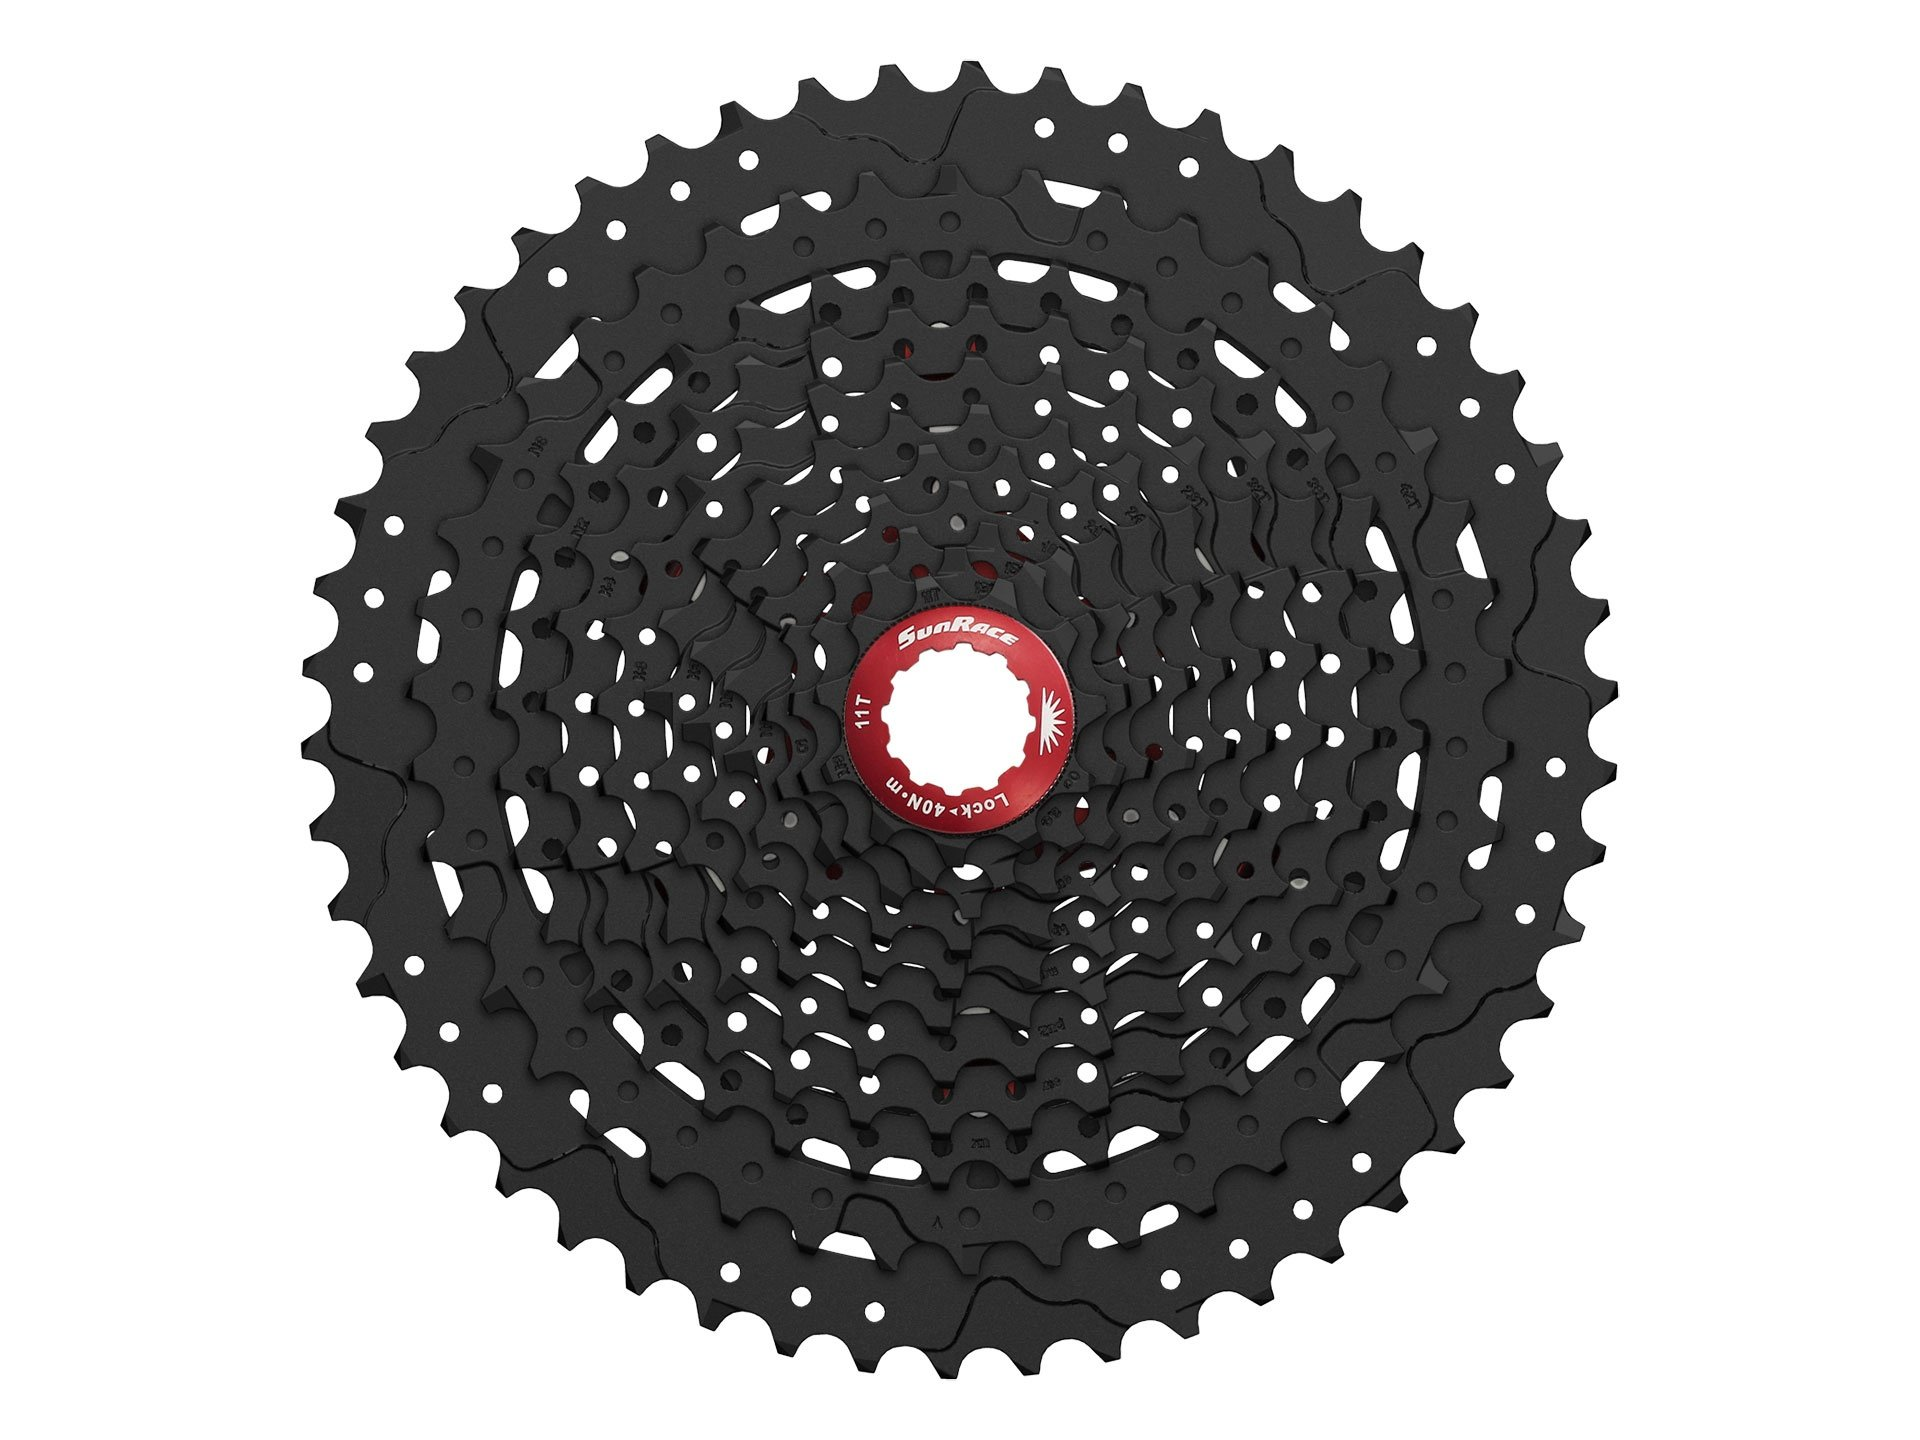 Sunrace 11-50T CSMX80 wide ratio 11-speed MTB Cassette with rear derailleur link by JGbike (Black Chrome)